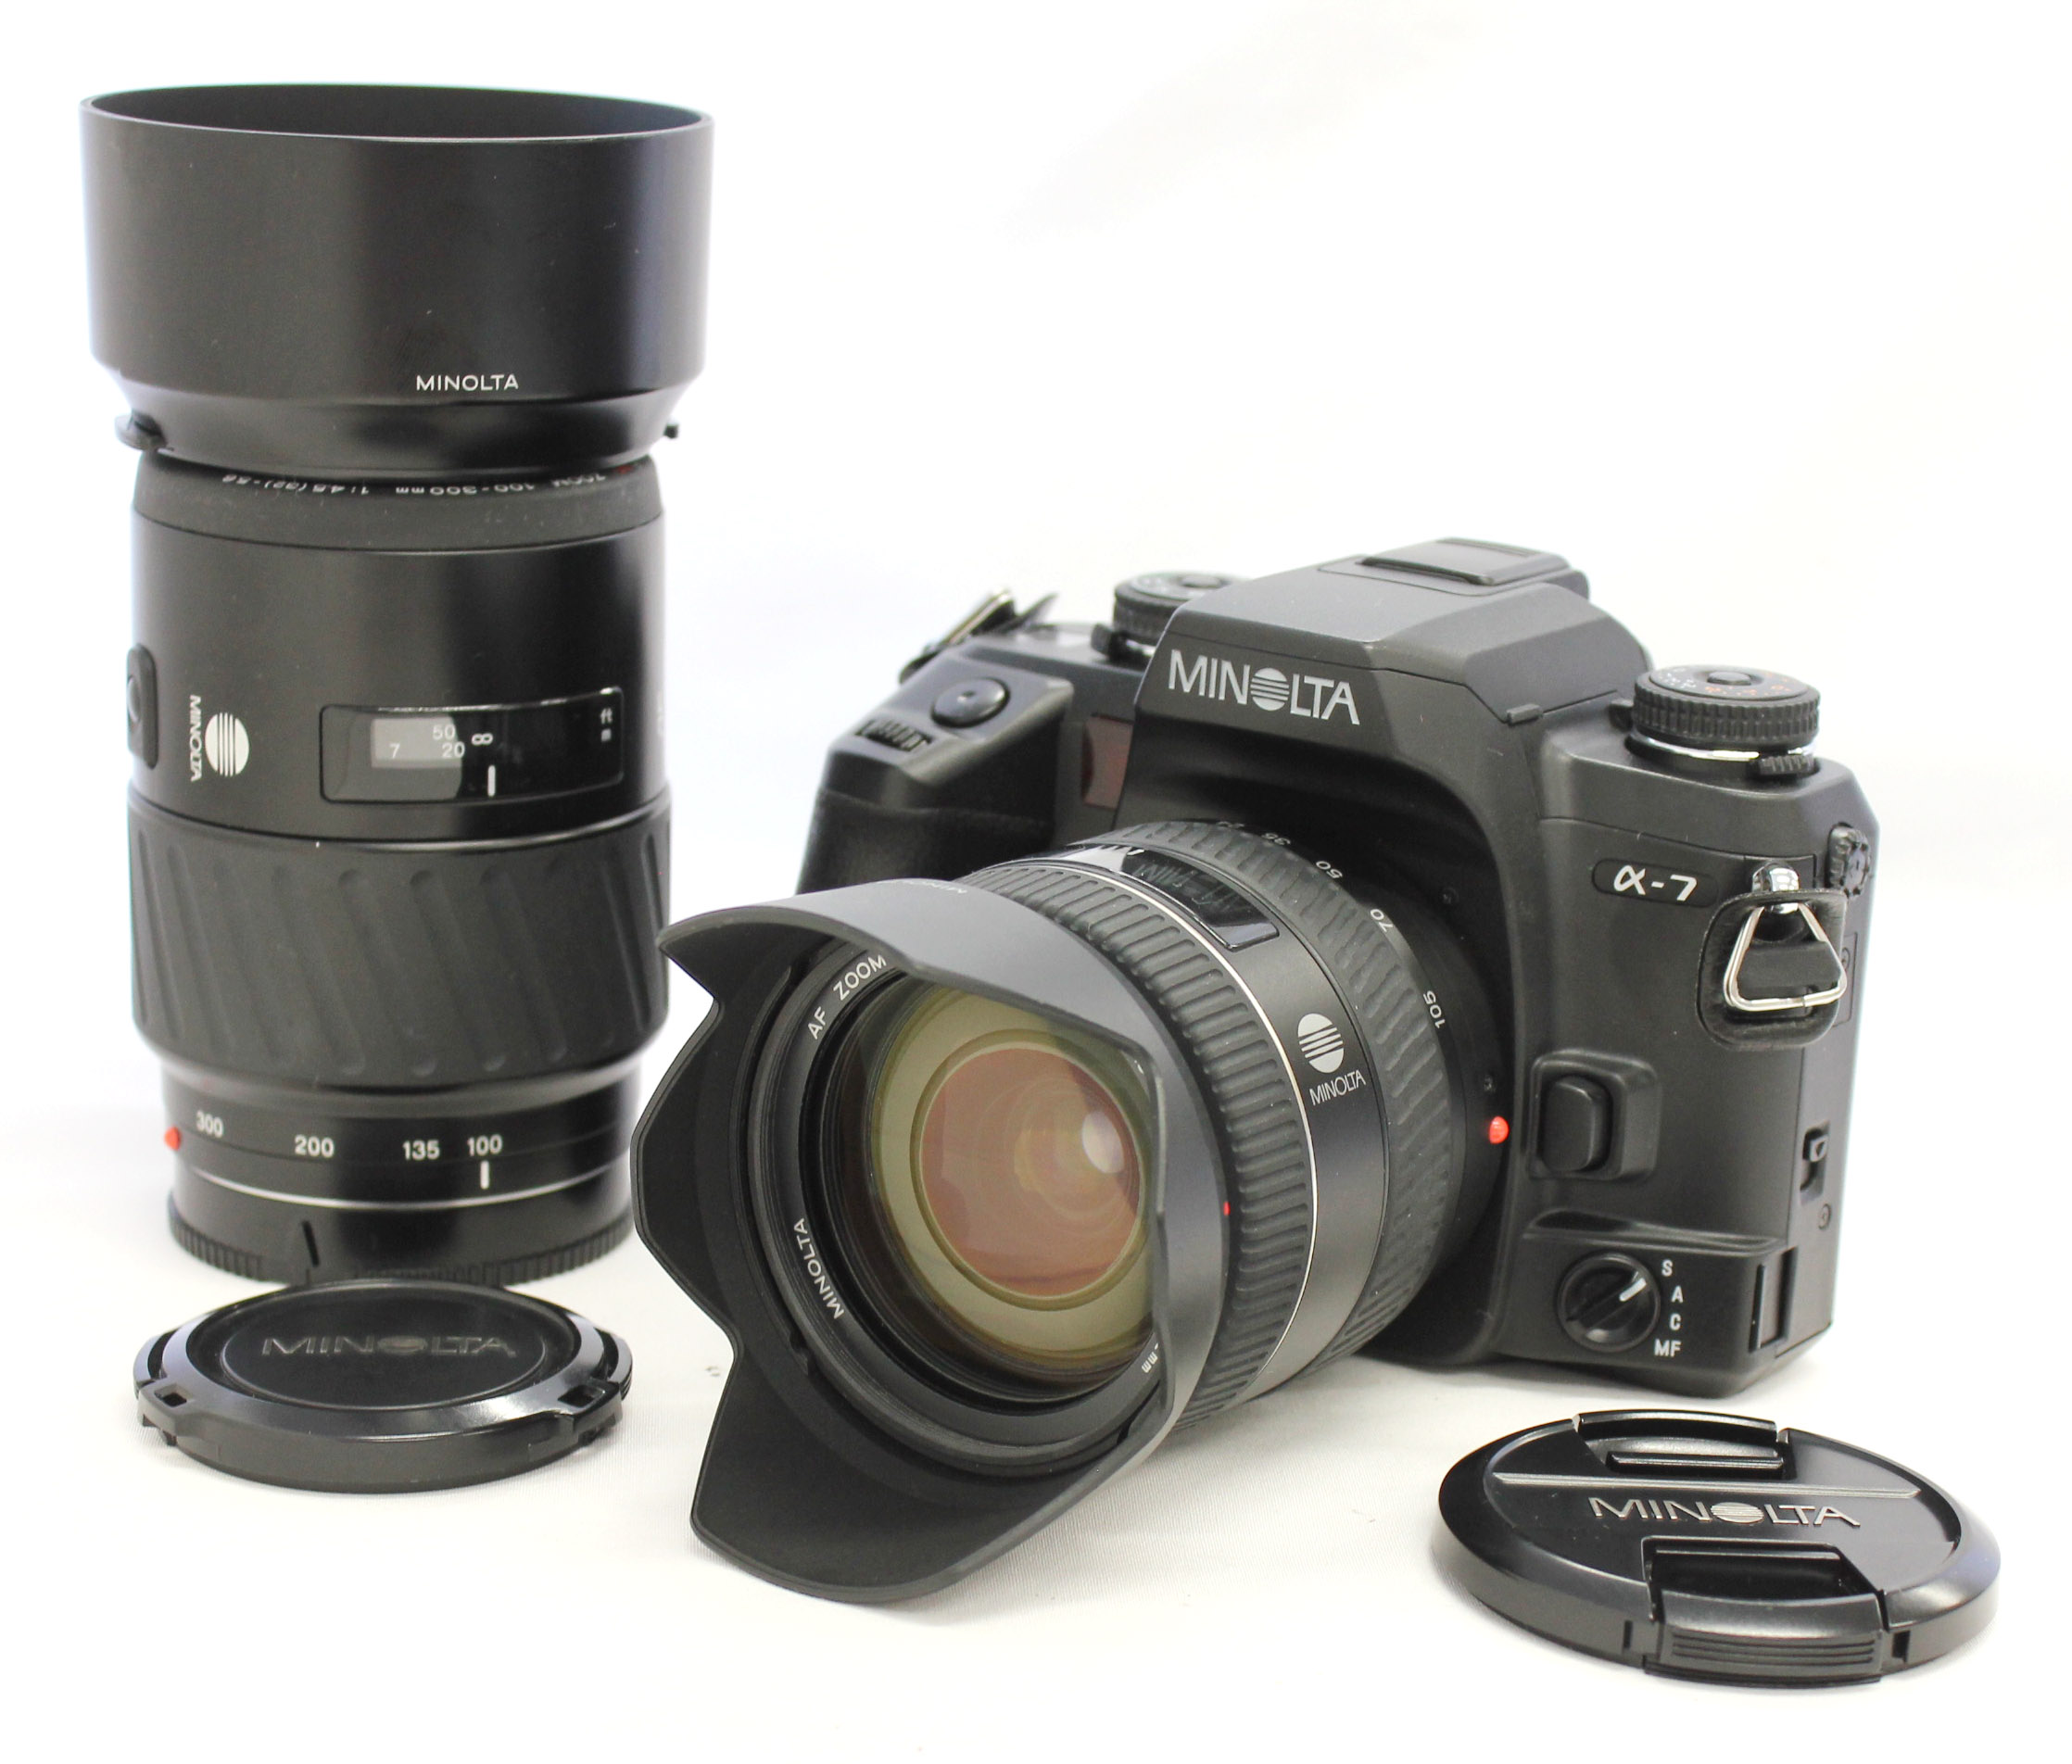 [Near Mint] Minolta Maxxum 7 Dynax 7 a7 α-7 with AF Zoom 24-105mm F/3.5-4.5 D & AF Zoom 100-300mm F/4.5-5.6 from Japan